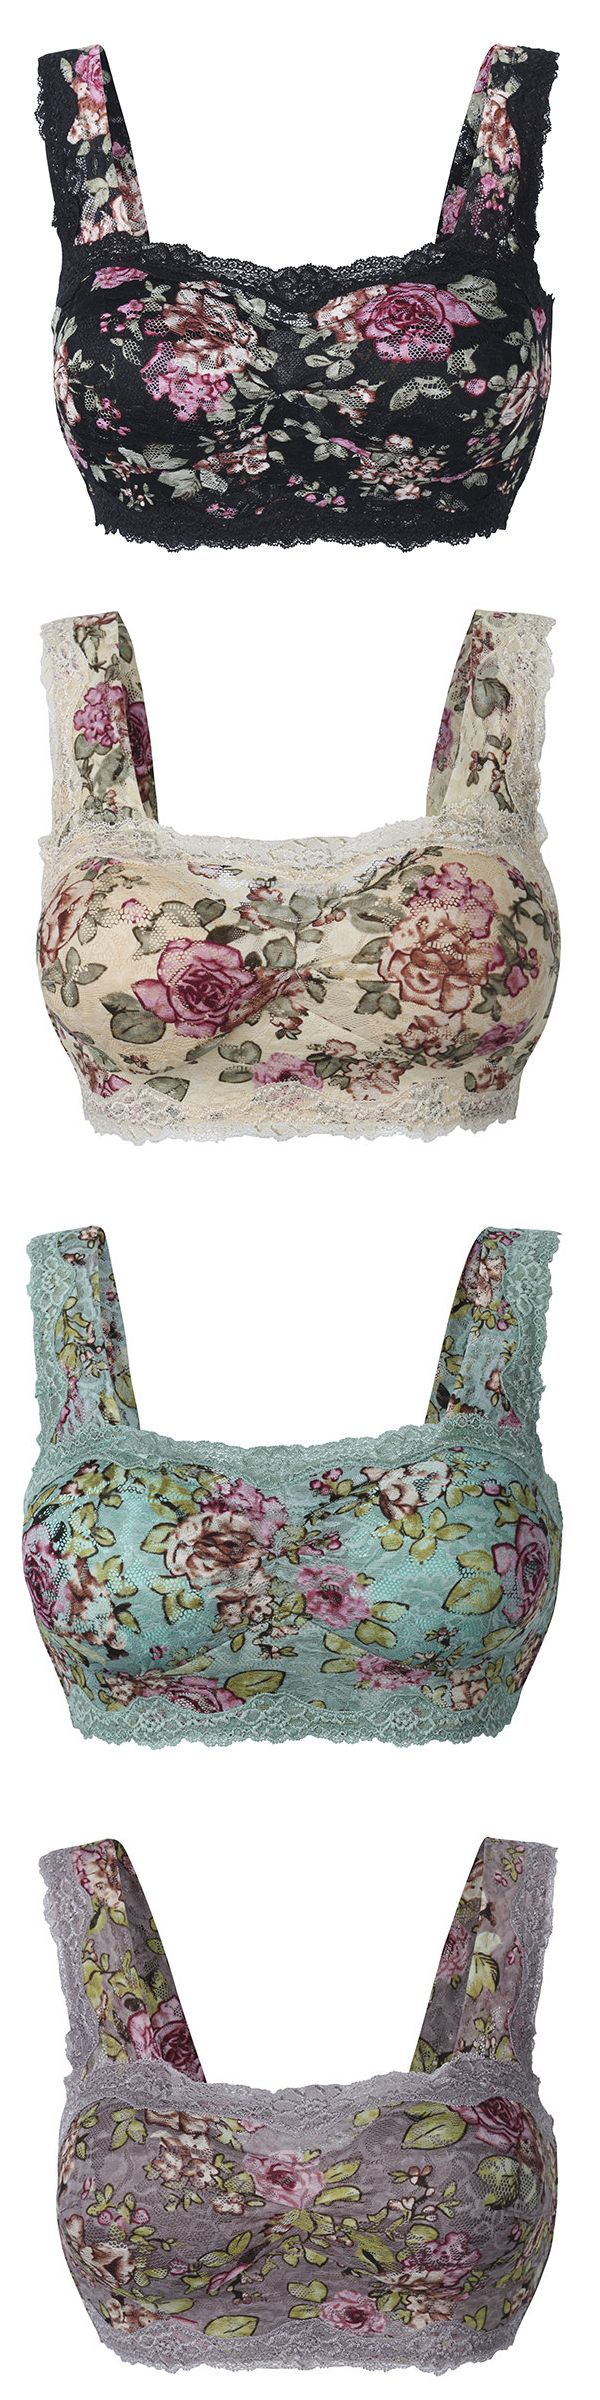 Plus Size Floral Lace Hem Bras Breathable Wireless Vest Bra